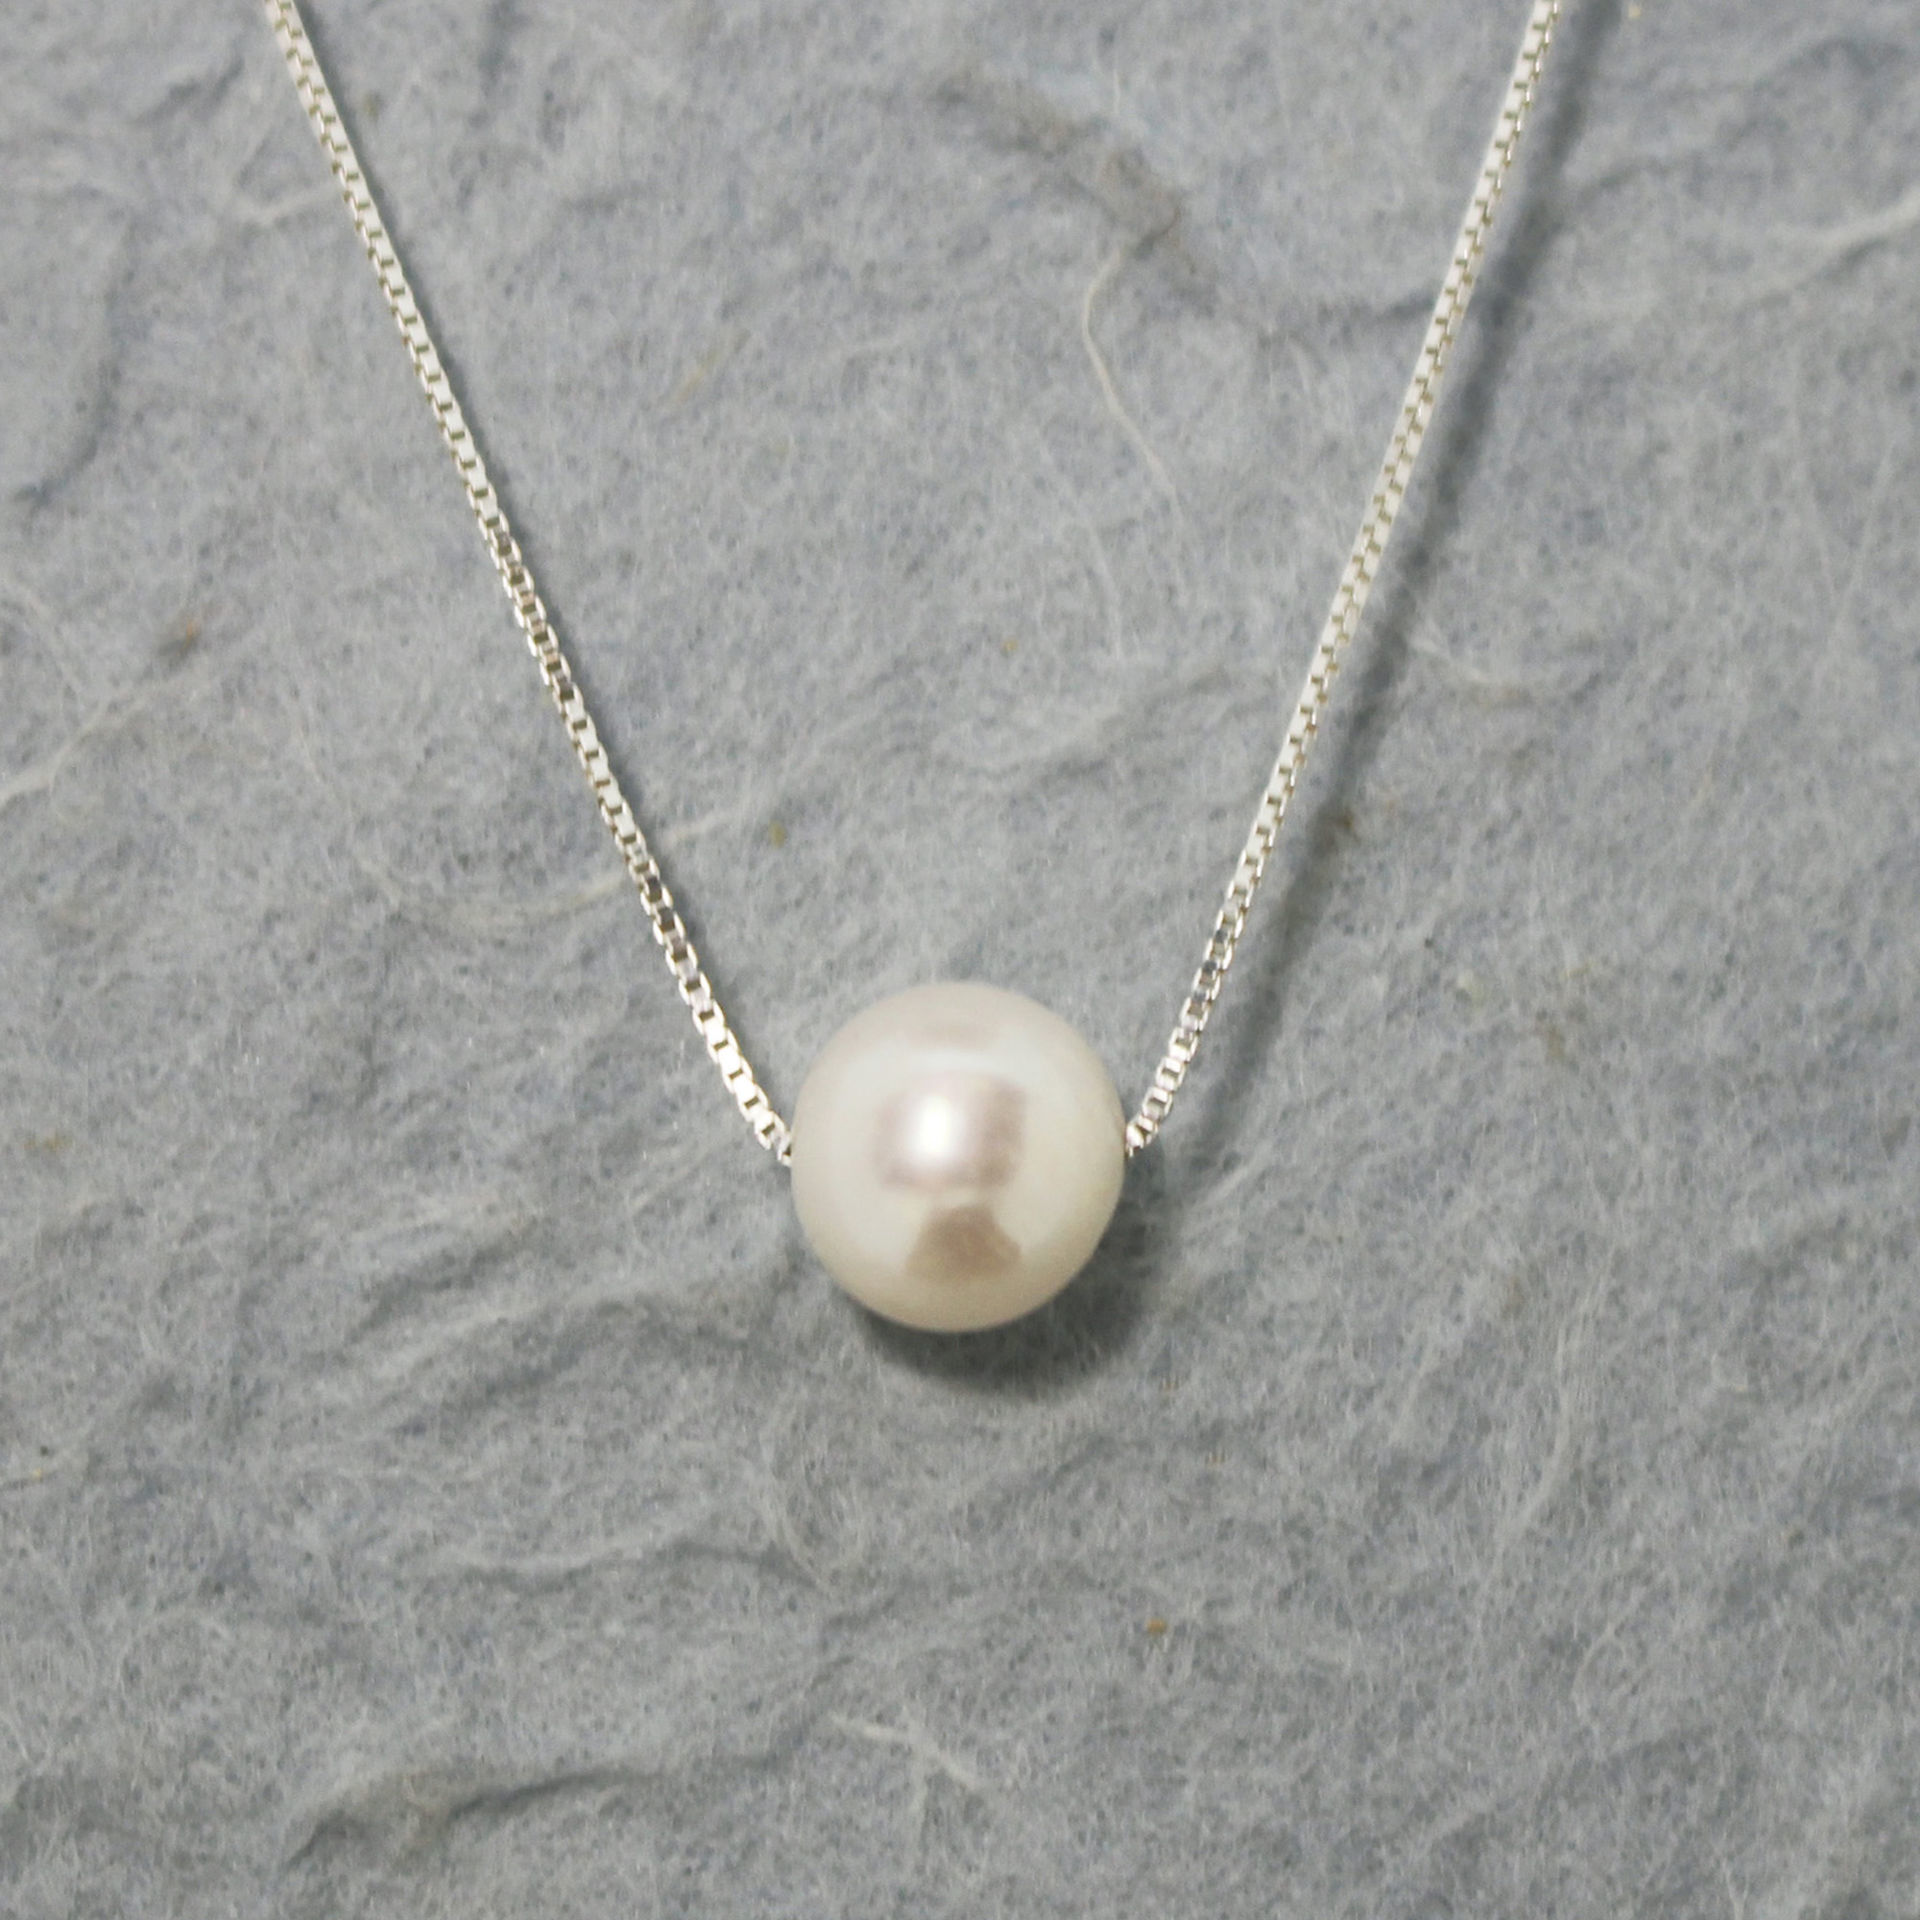 925 Sterling Silver Floating White Freshwater Pearl Necklace - 18""